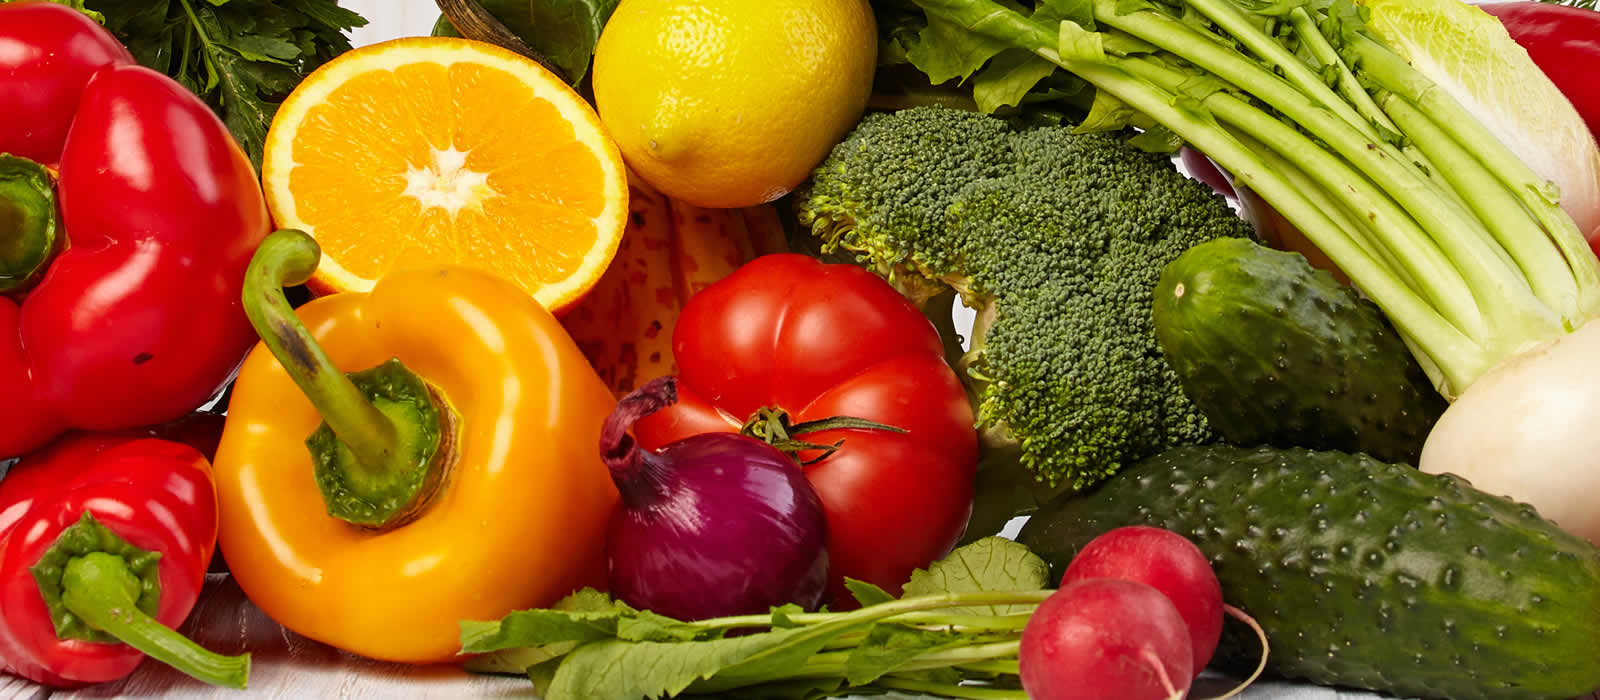 Everything You Have To Know About Natural Food And Why You Should End Getting Inorganic Food